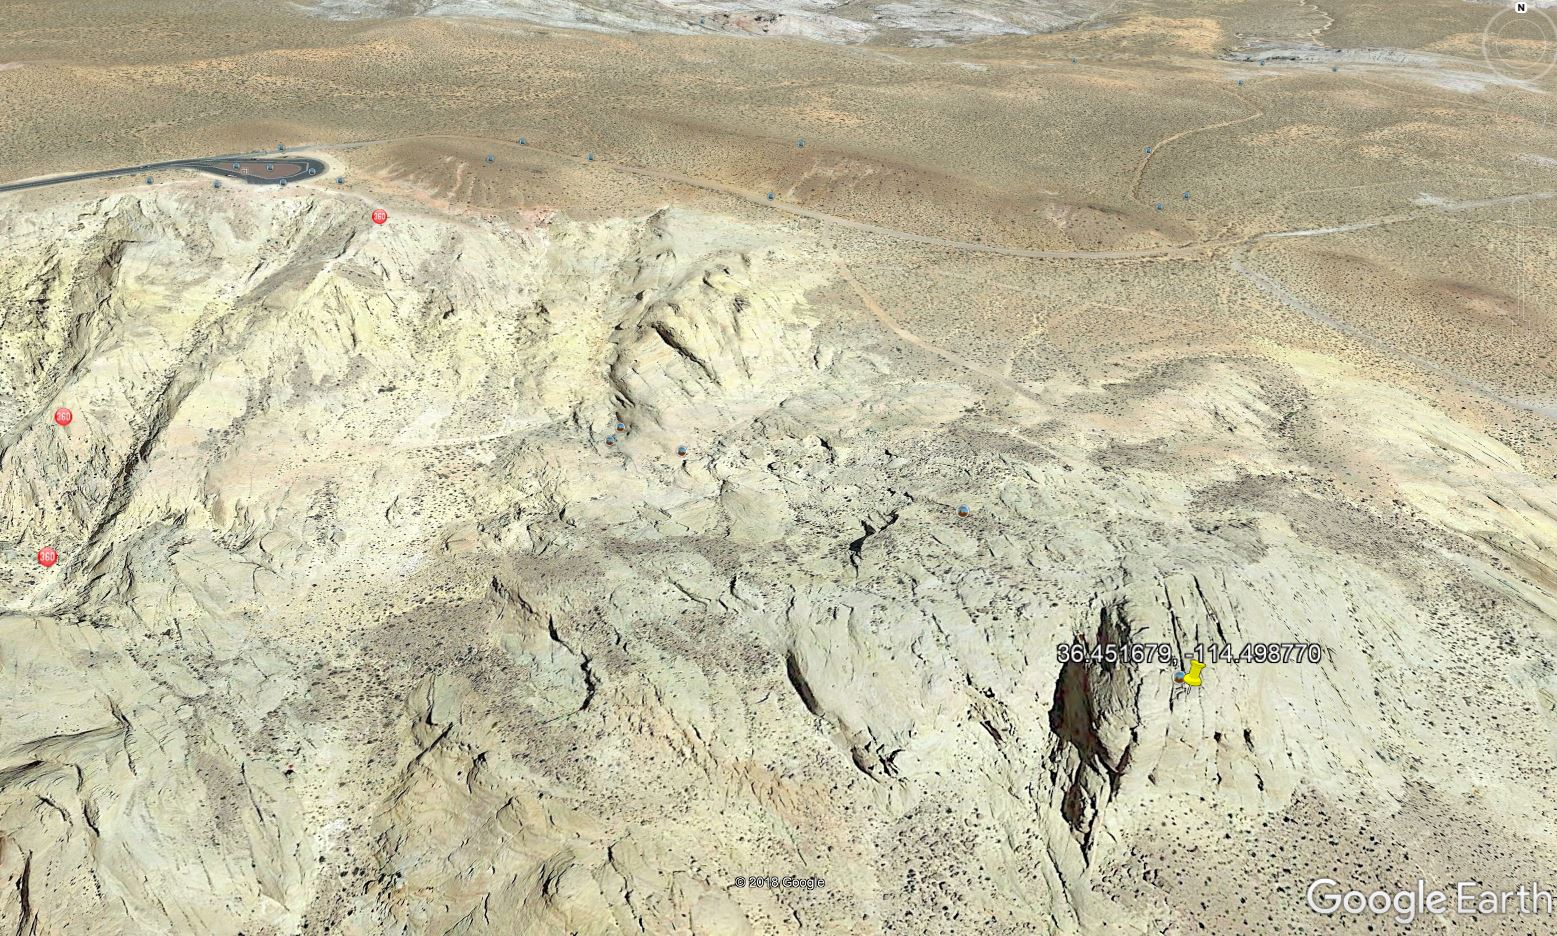 Google Earth view of Captain Kirk's final resting place